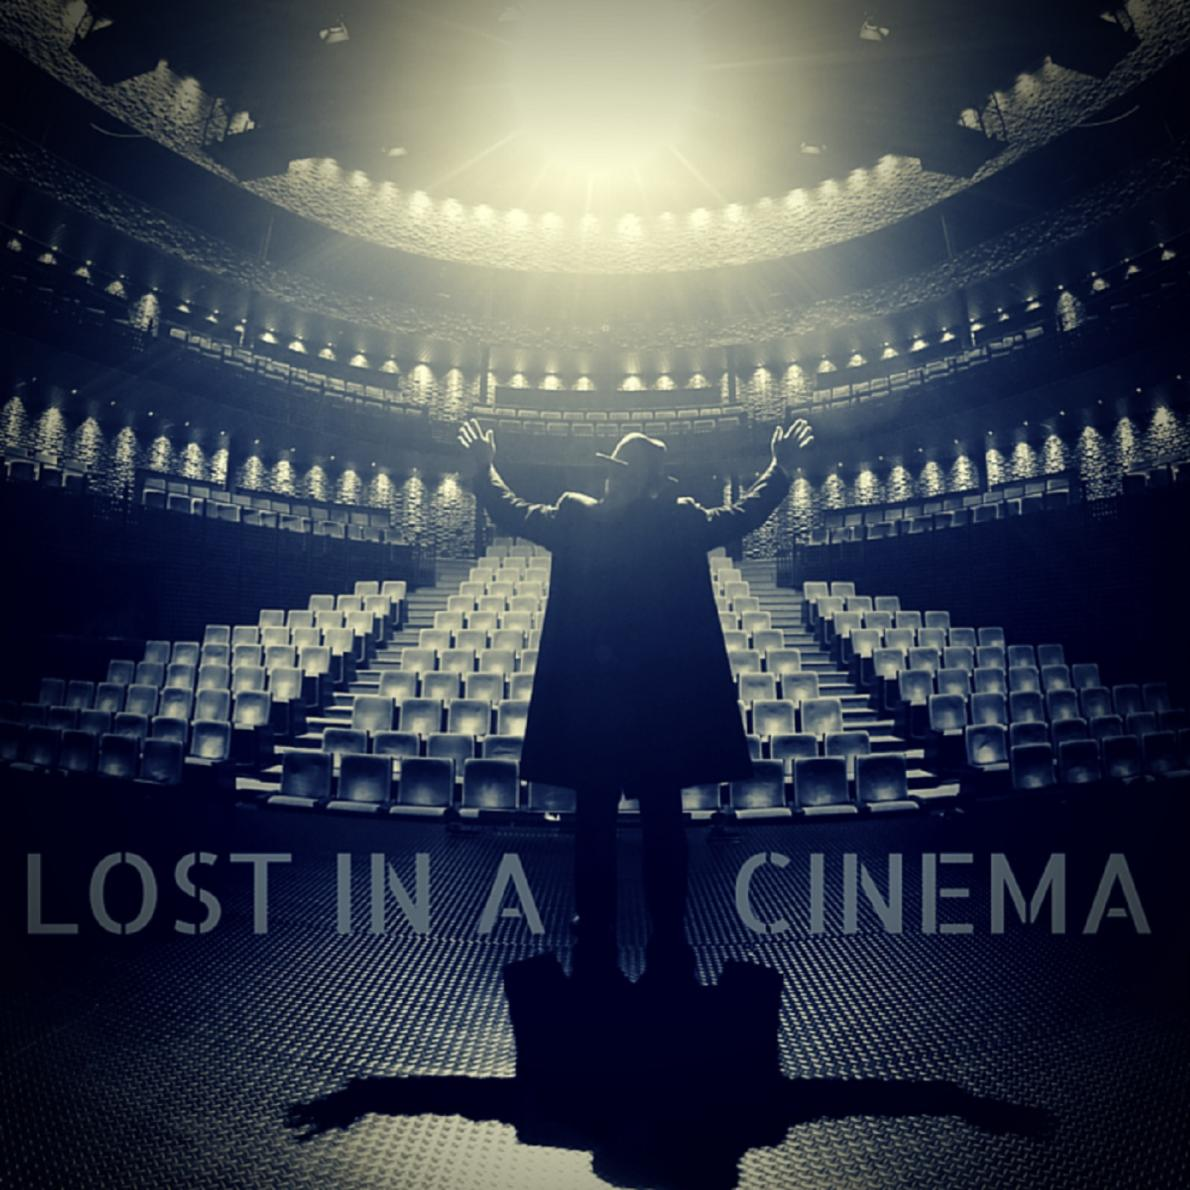 lost in a cinema